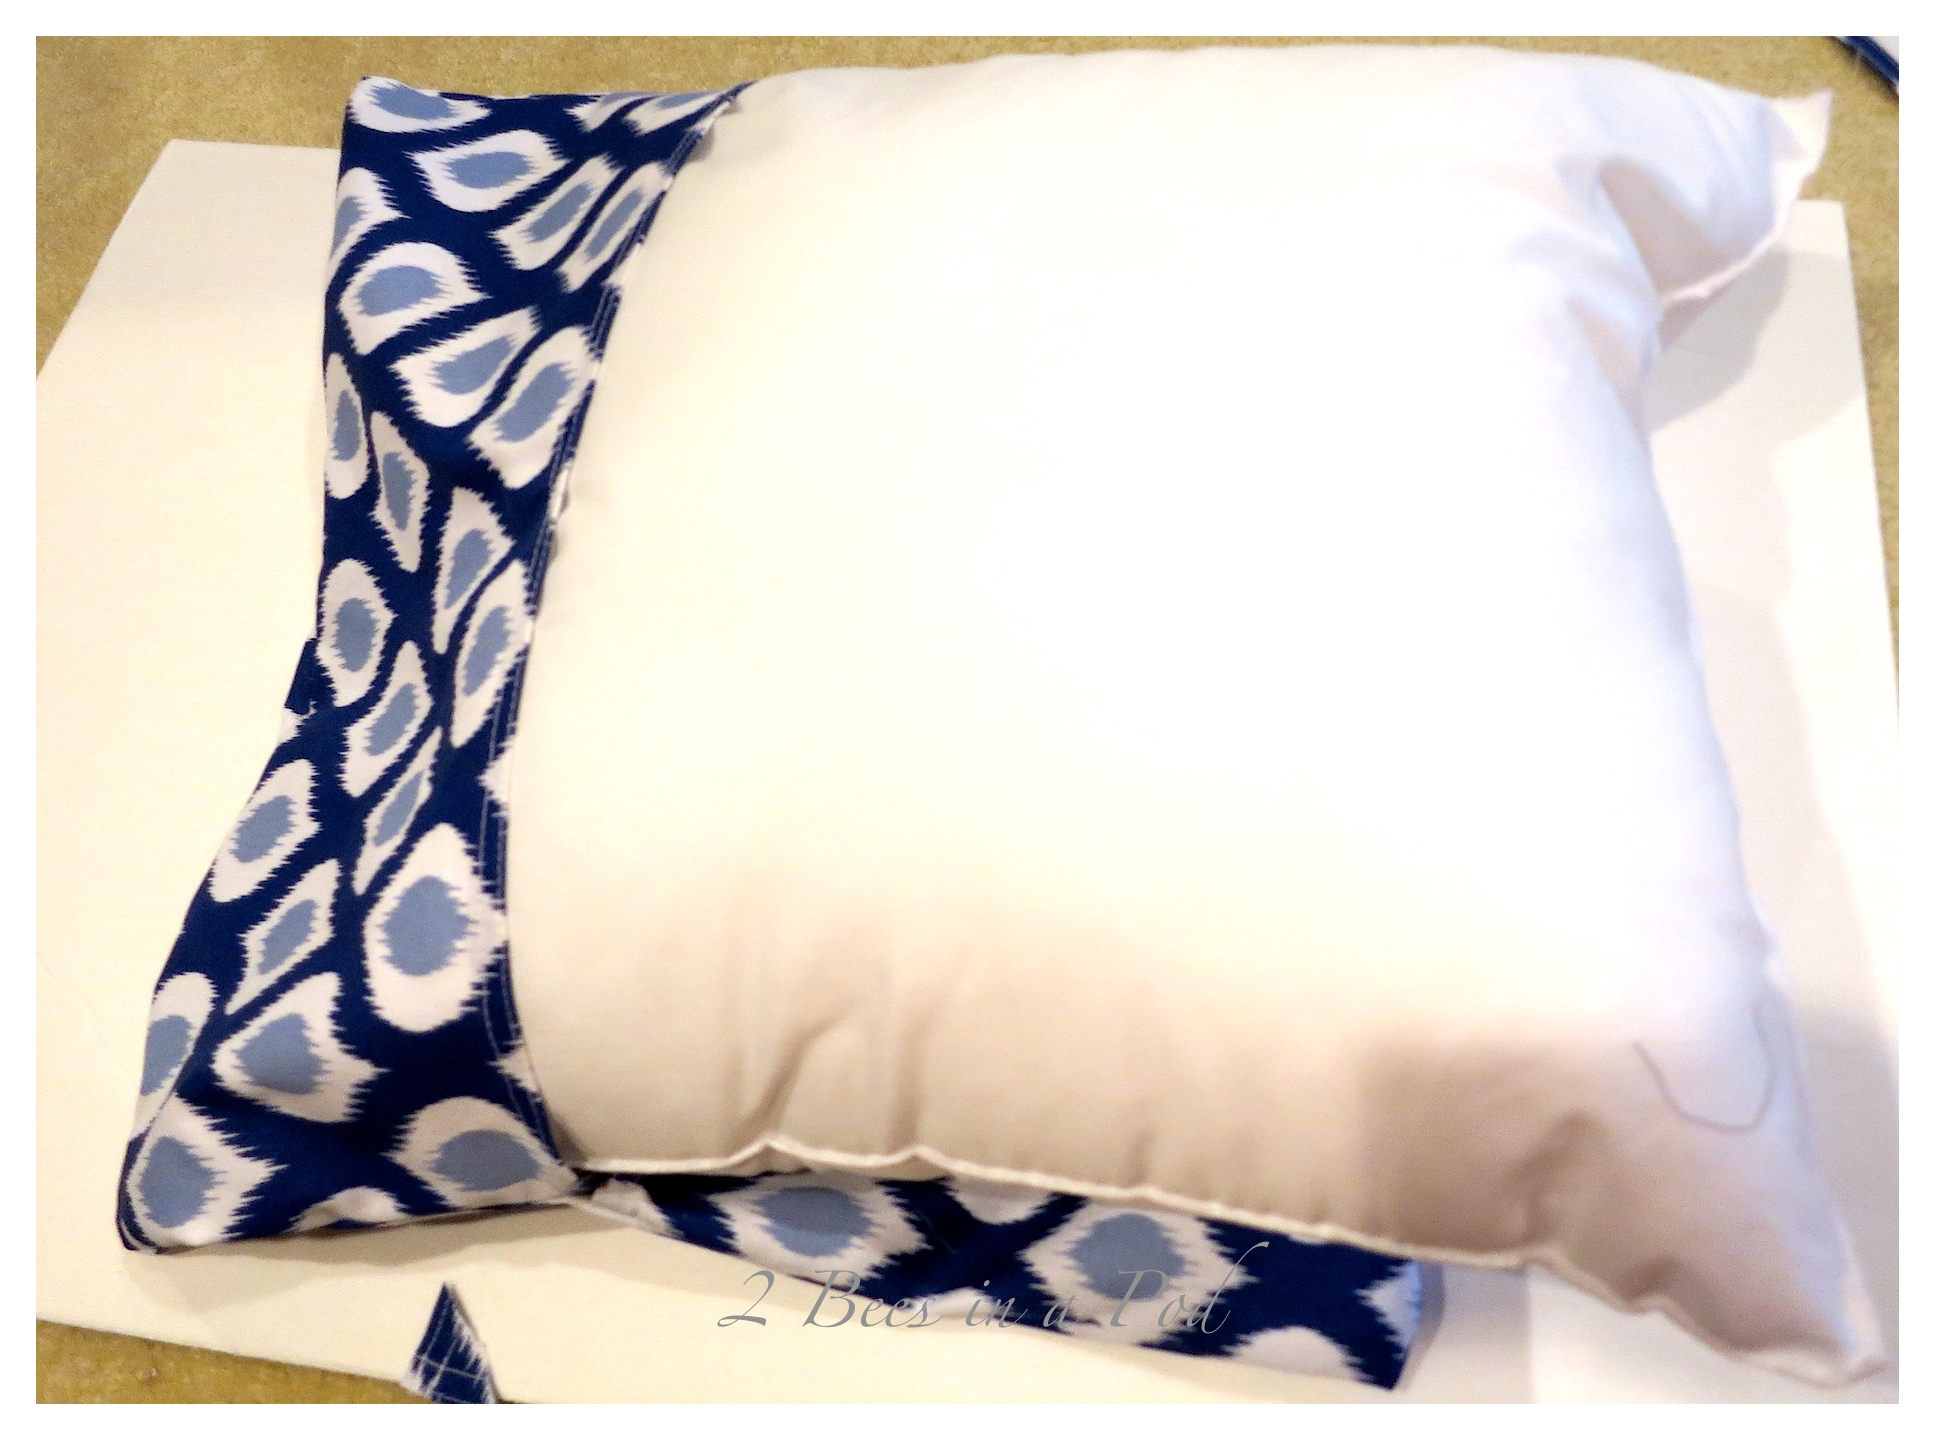 DIY decorative pillow cover made with cloth dinner napkins. Economical, easy, quick and pretty!